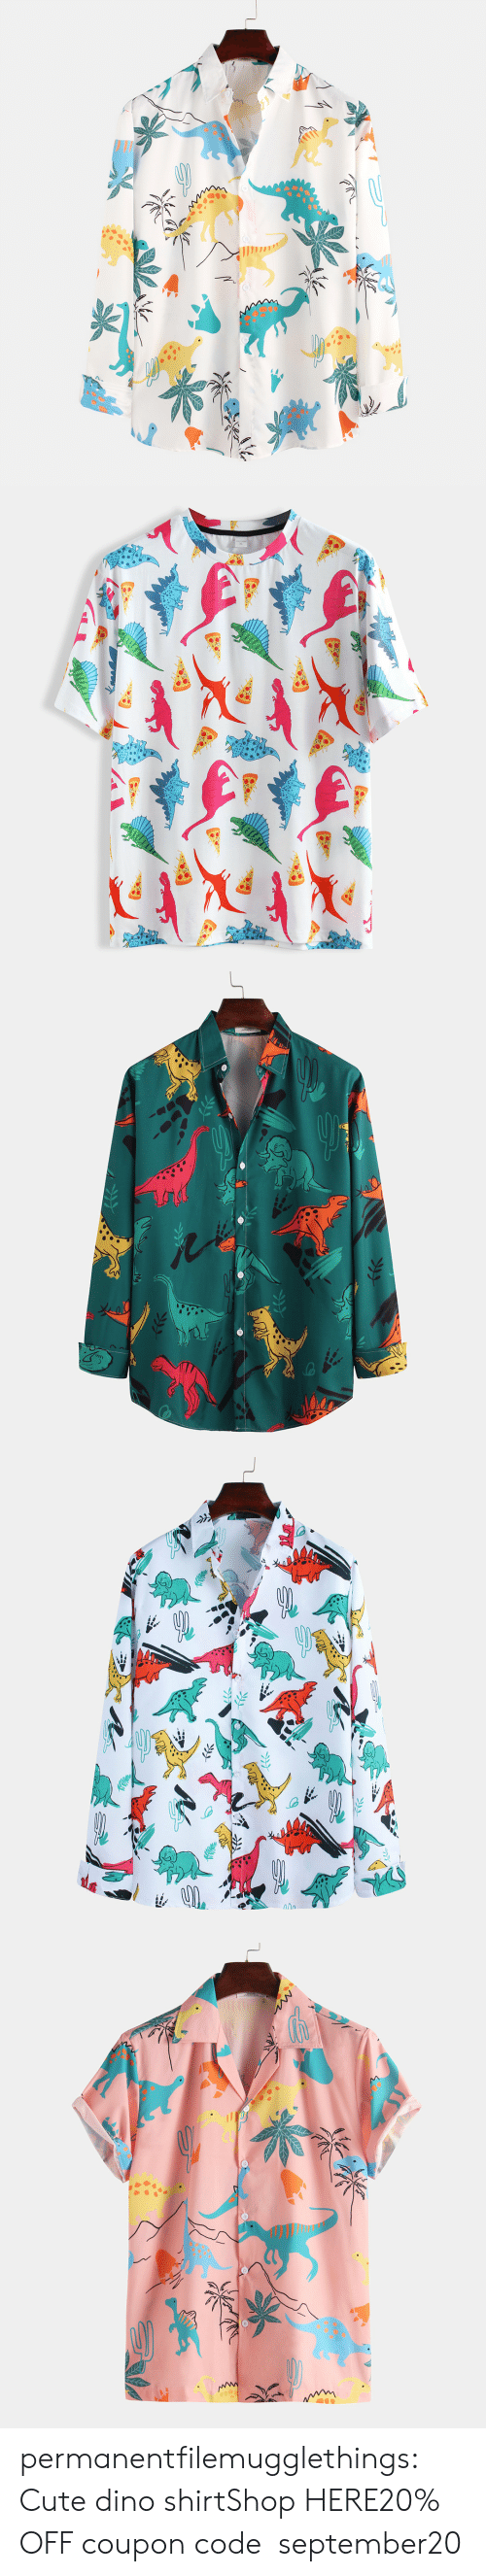 Cute, Tumblr, and Blog: permanentfilemugglethings:  Cute dino shirtShop HERE20% OFF coupon code:september20